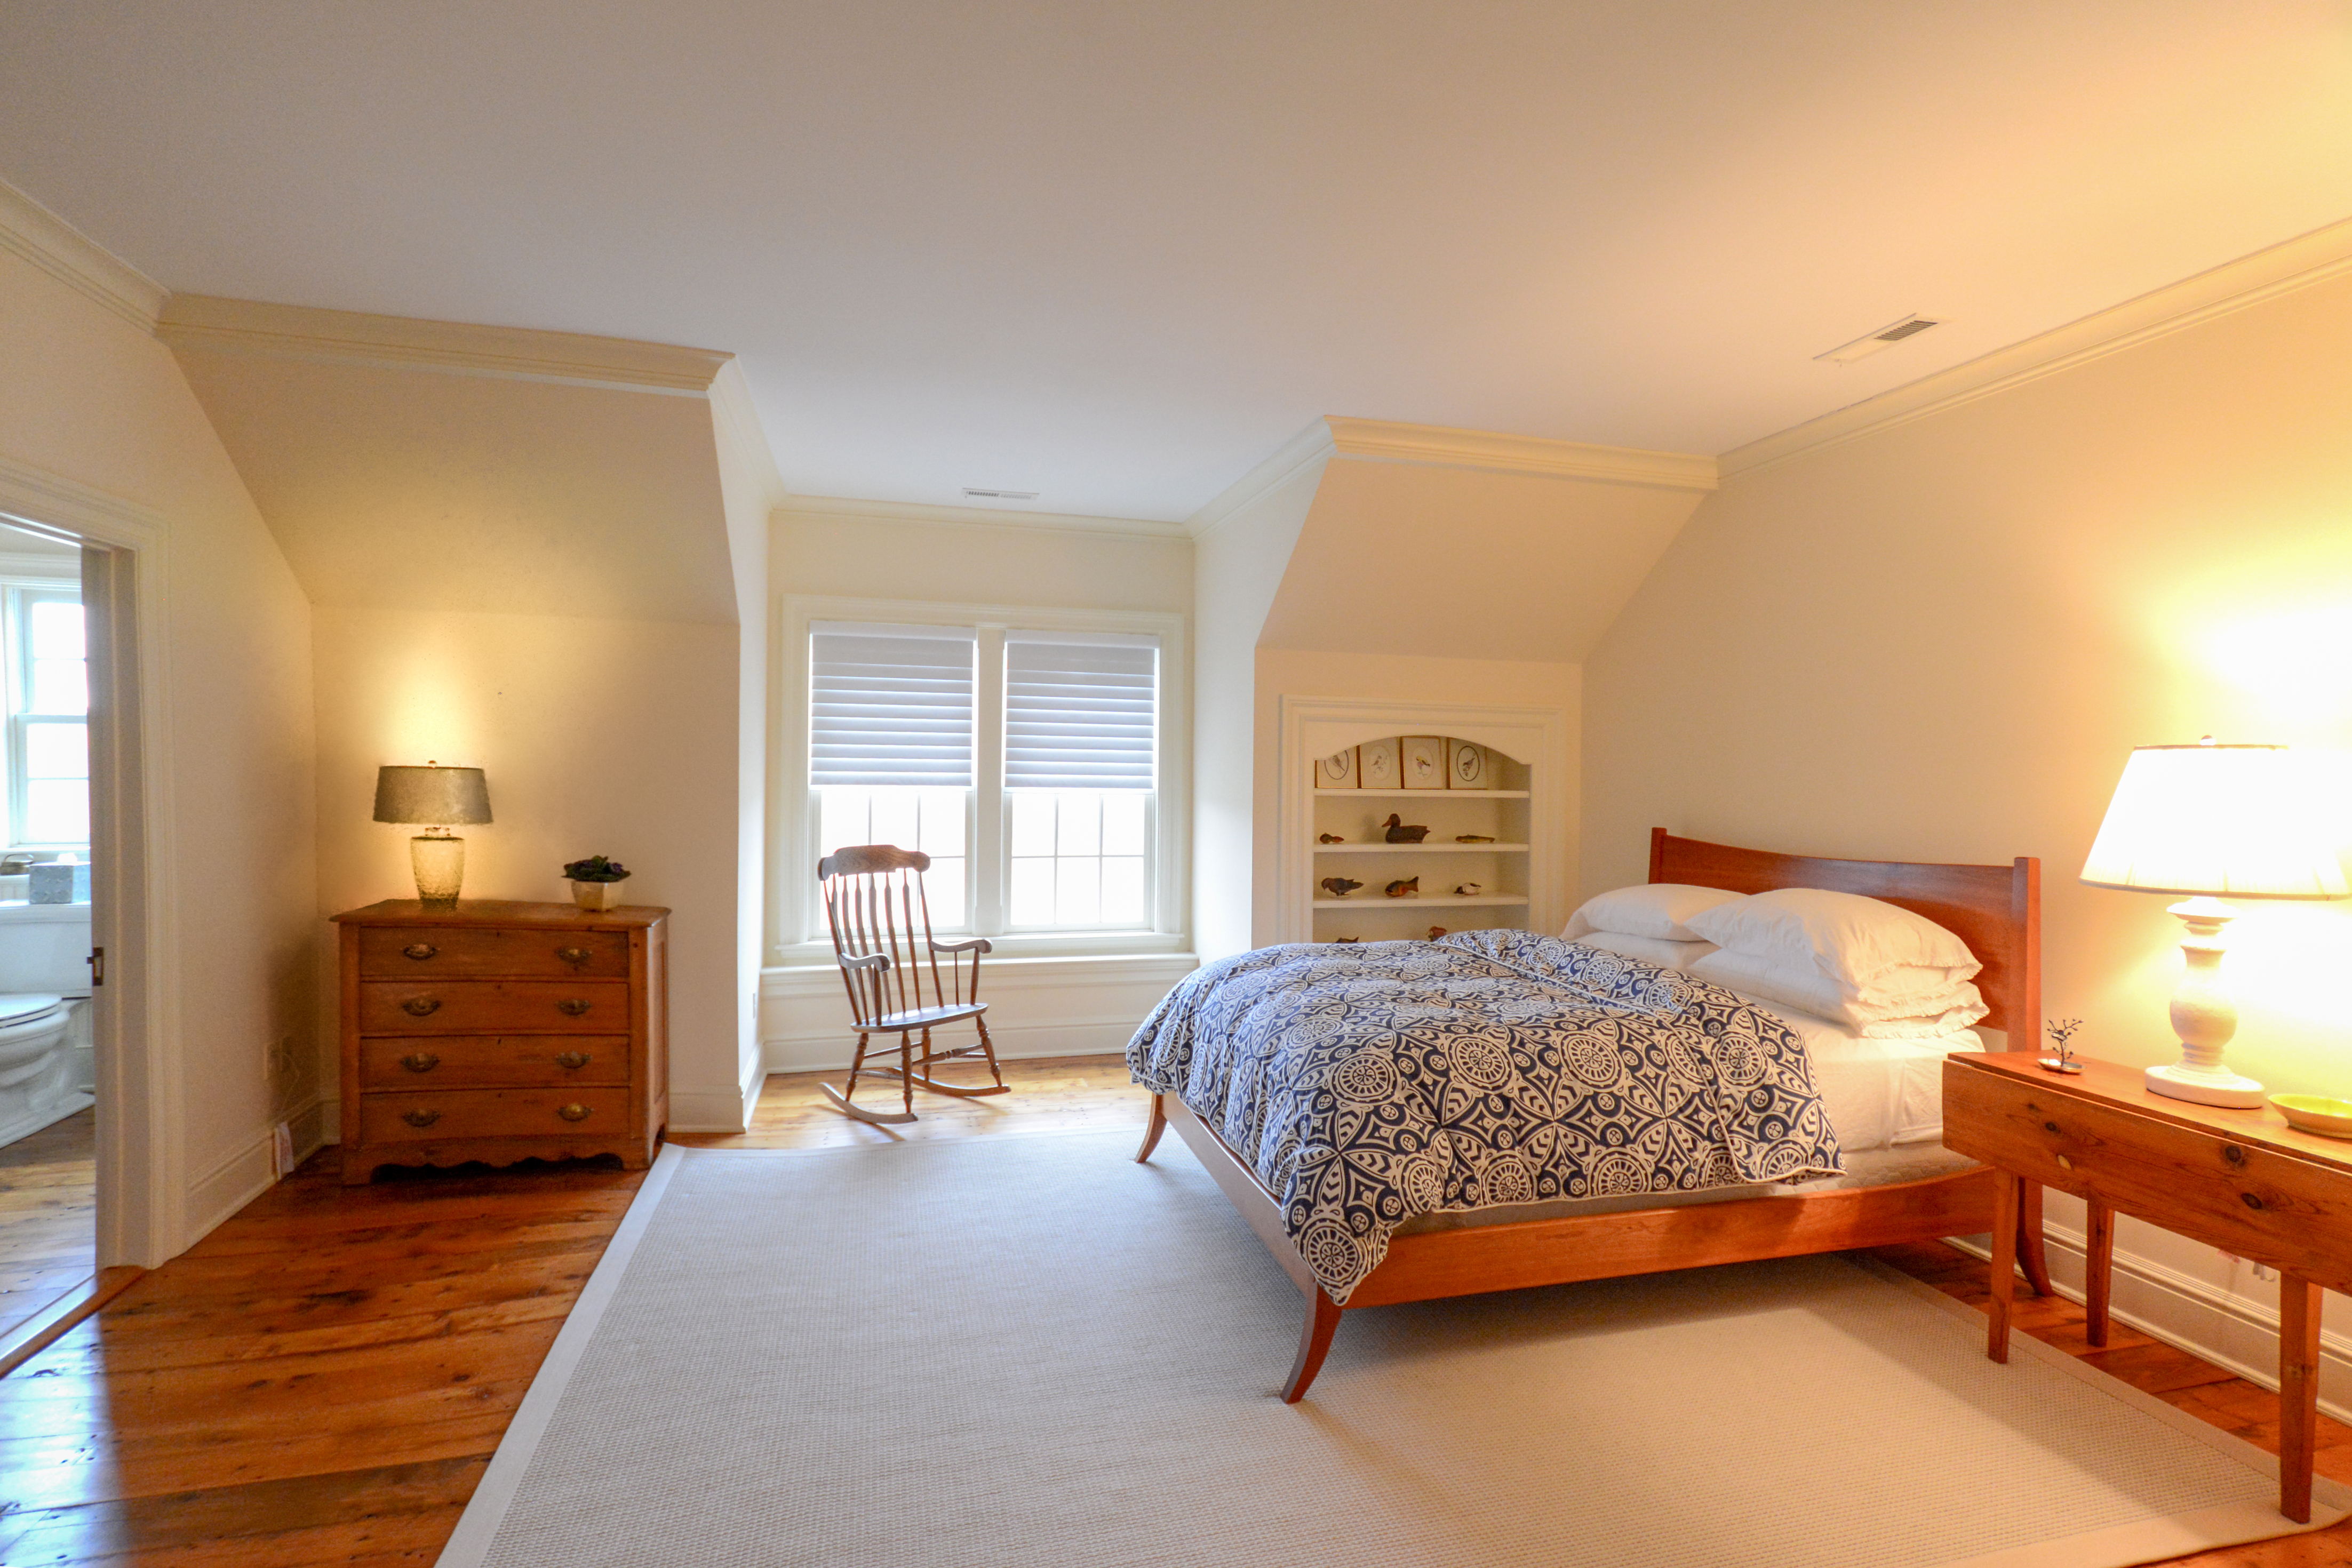 Inra Quilt Guest Room